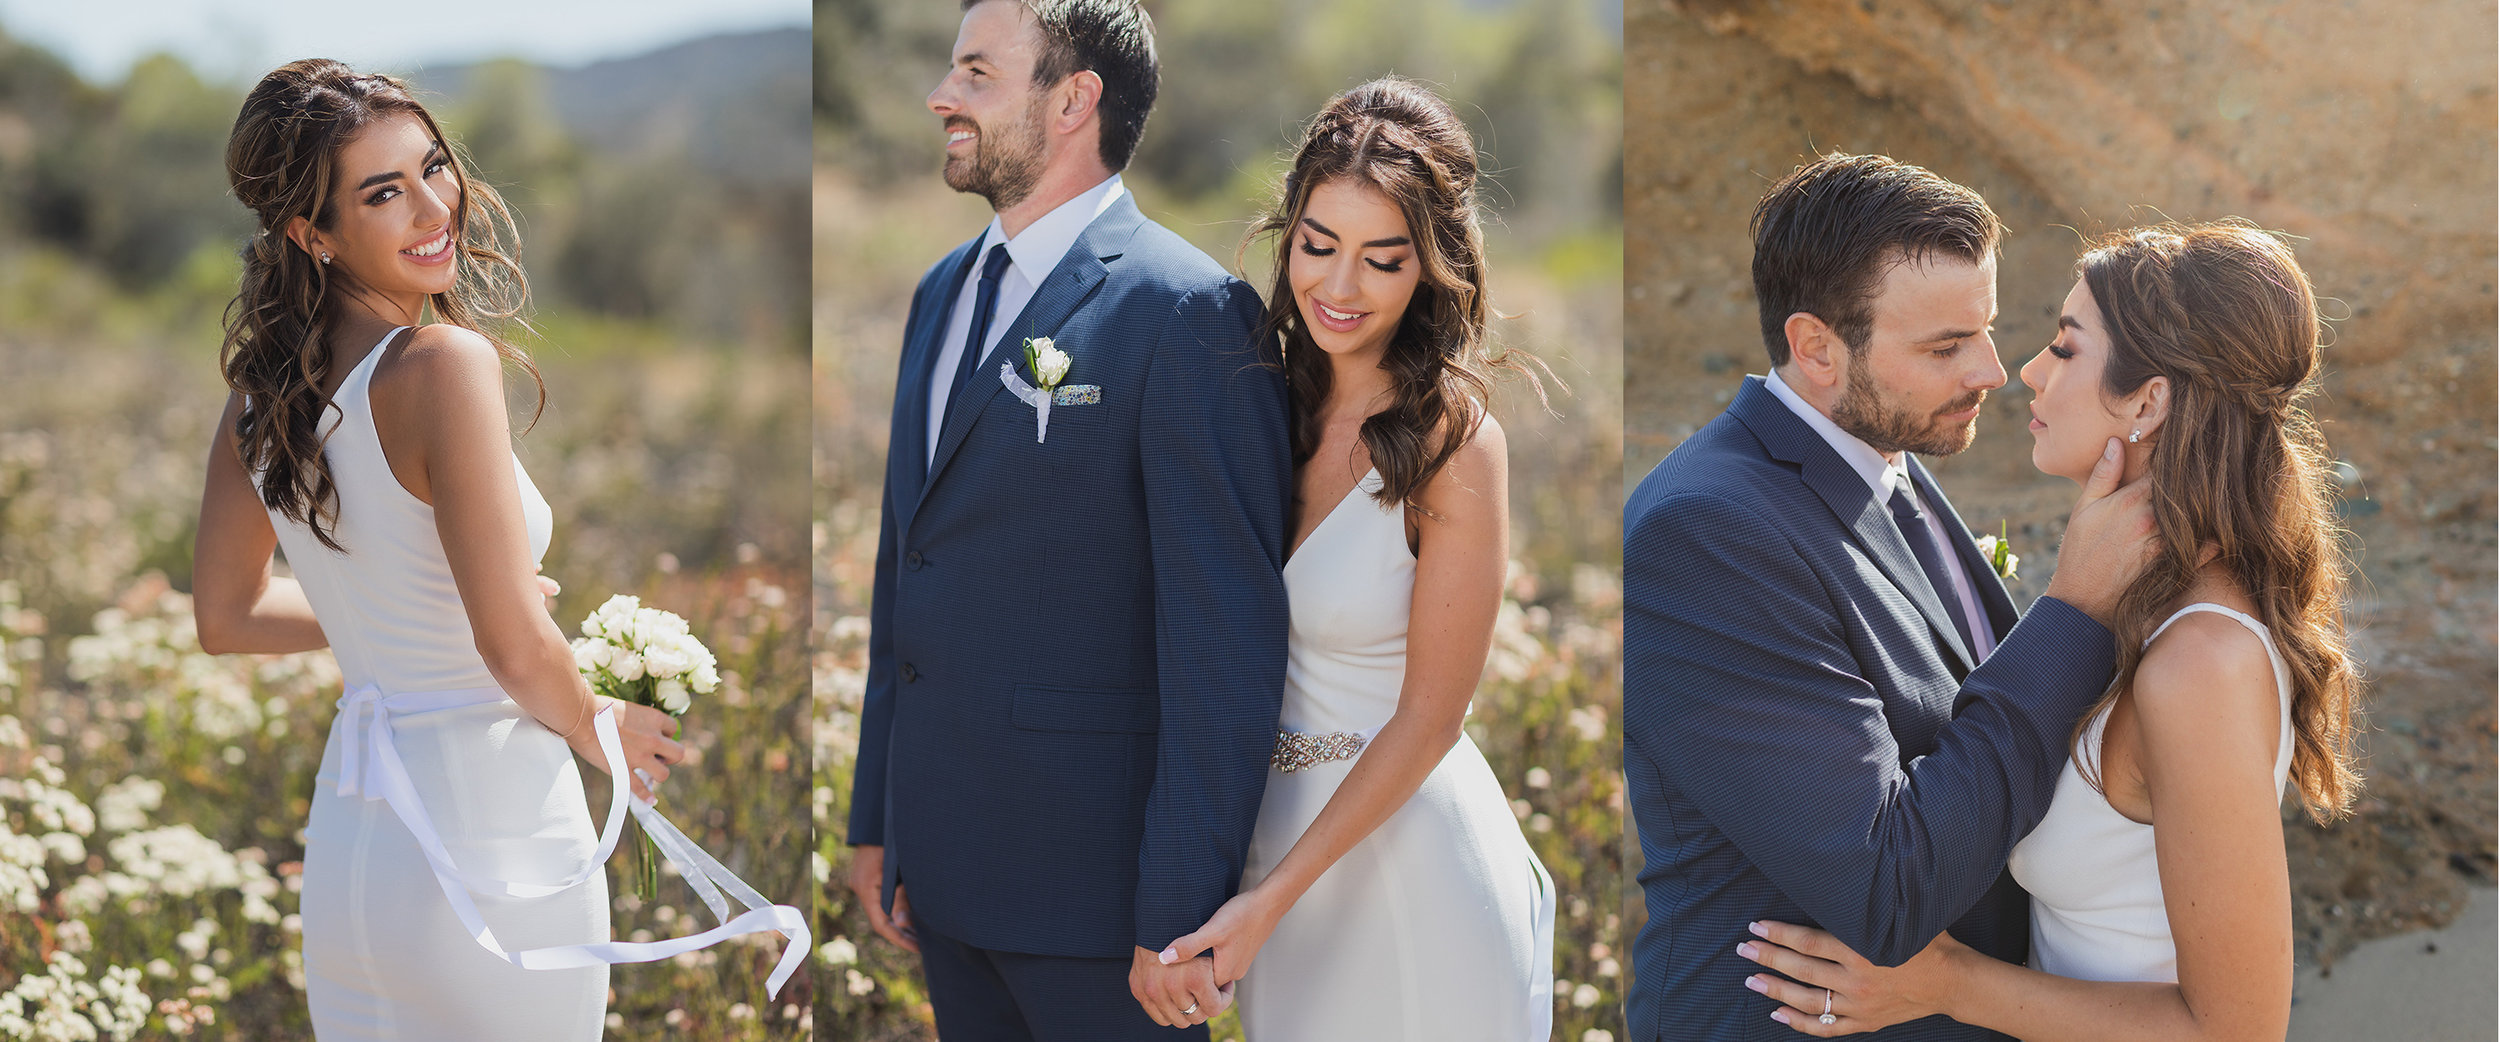 Desert Wedding Portraits in Laguna 21.jpg